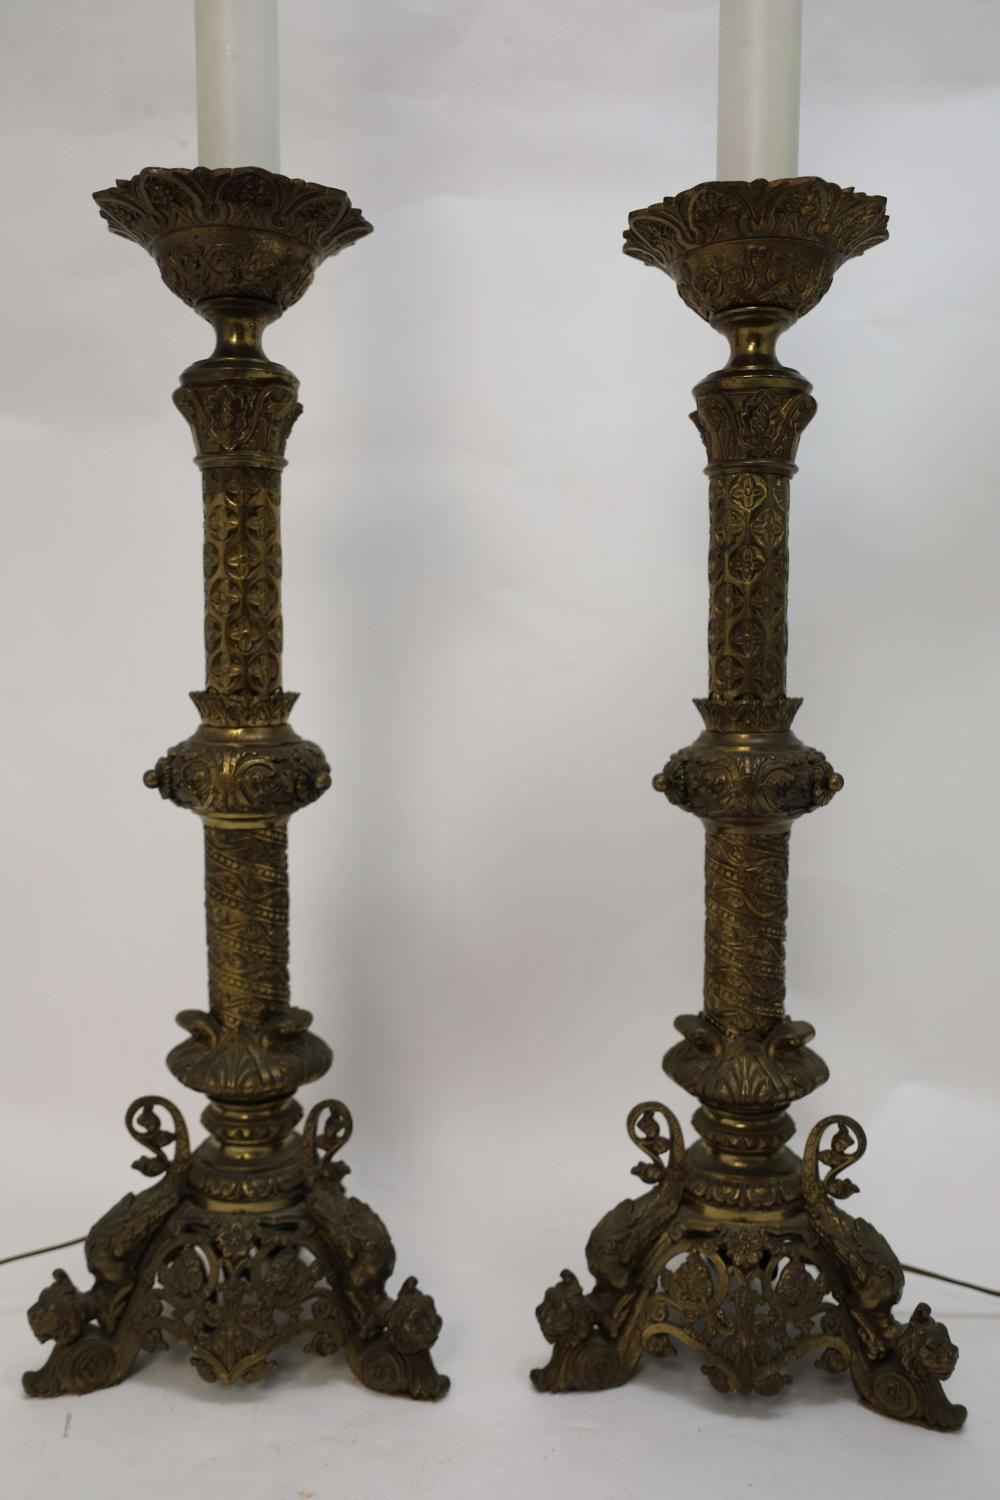 Pr 19c Griffin Footed Brass Prickets now Lamps